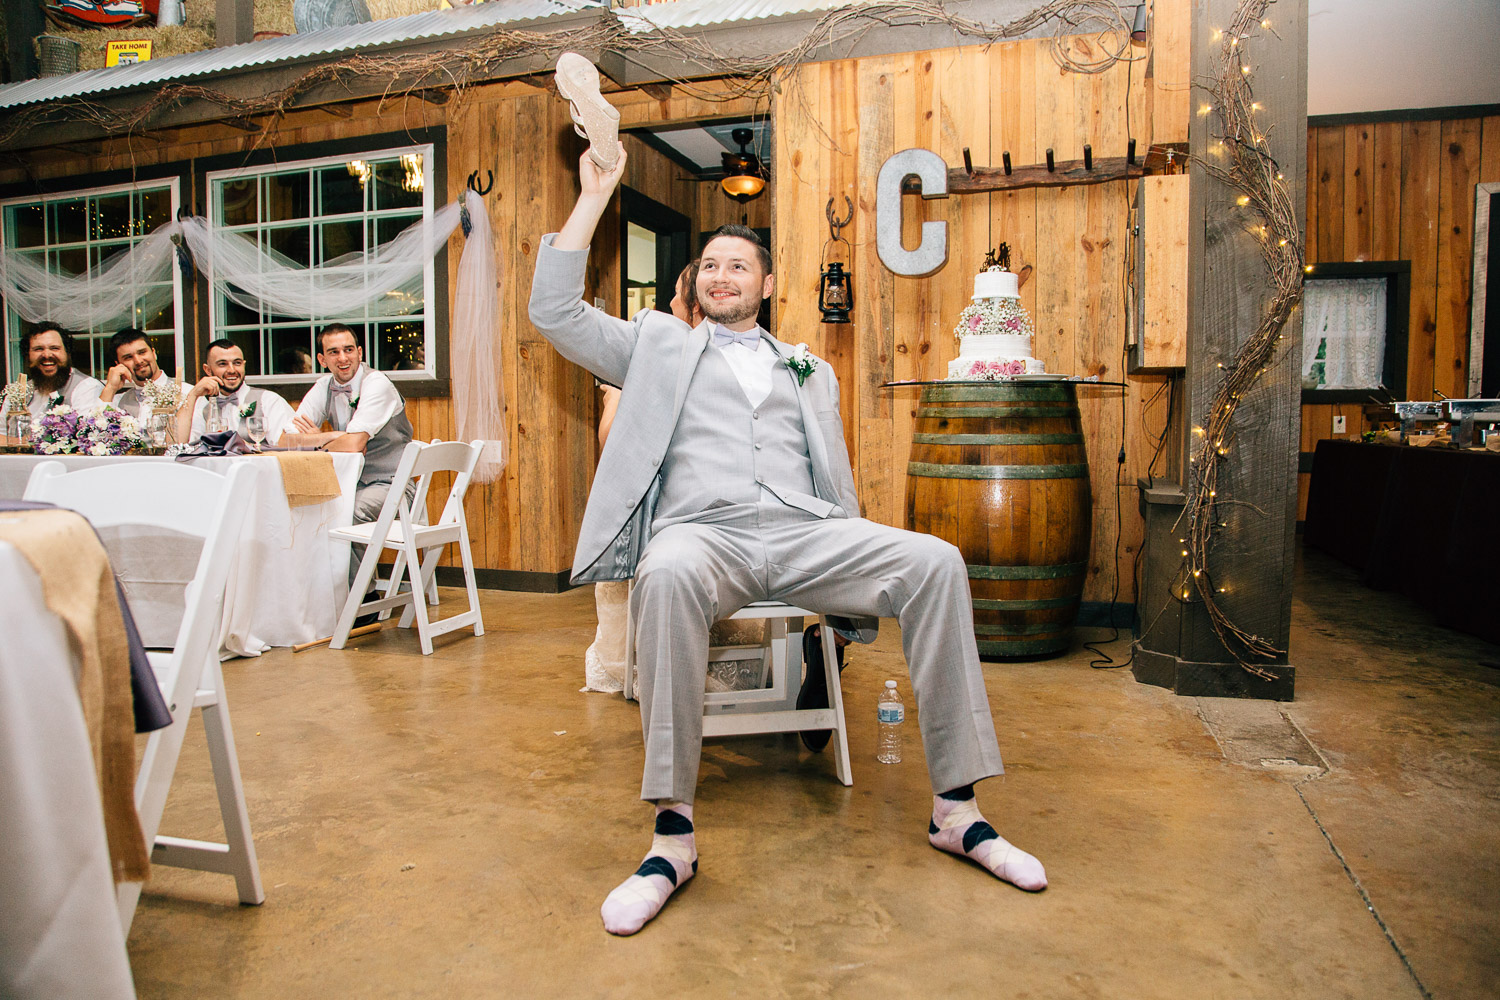 bride and groom play the shoe game at their reception